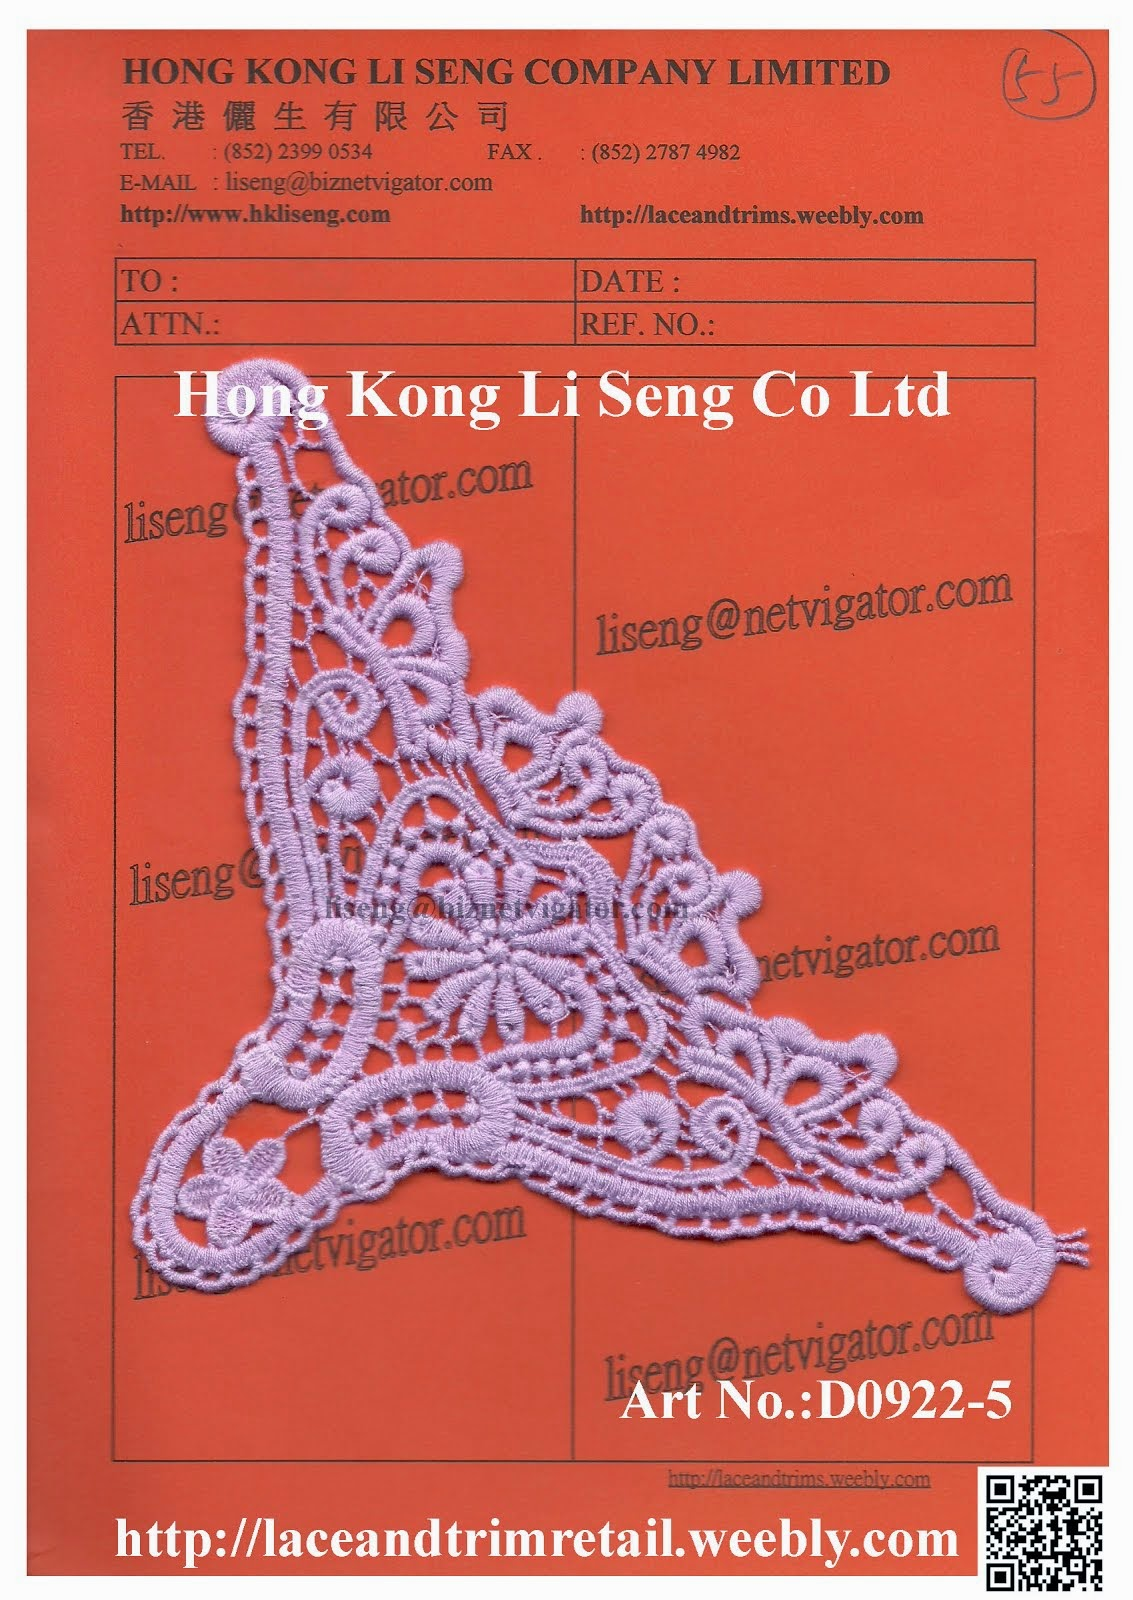 Lace and Trim Sample Retail Store